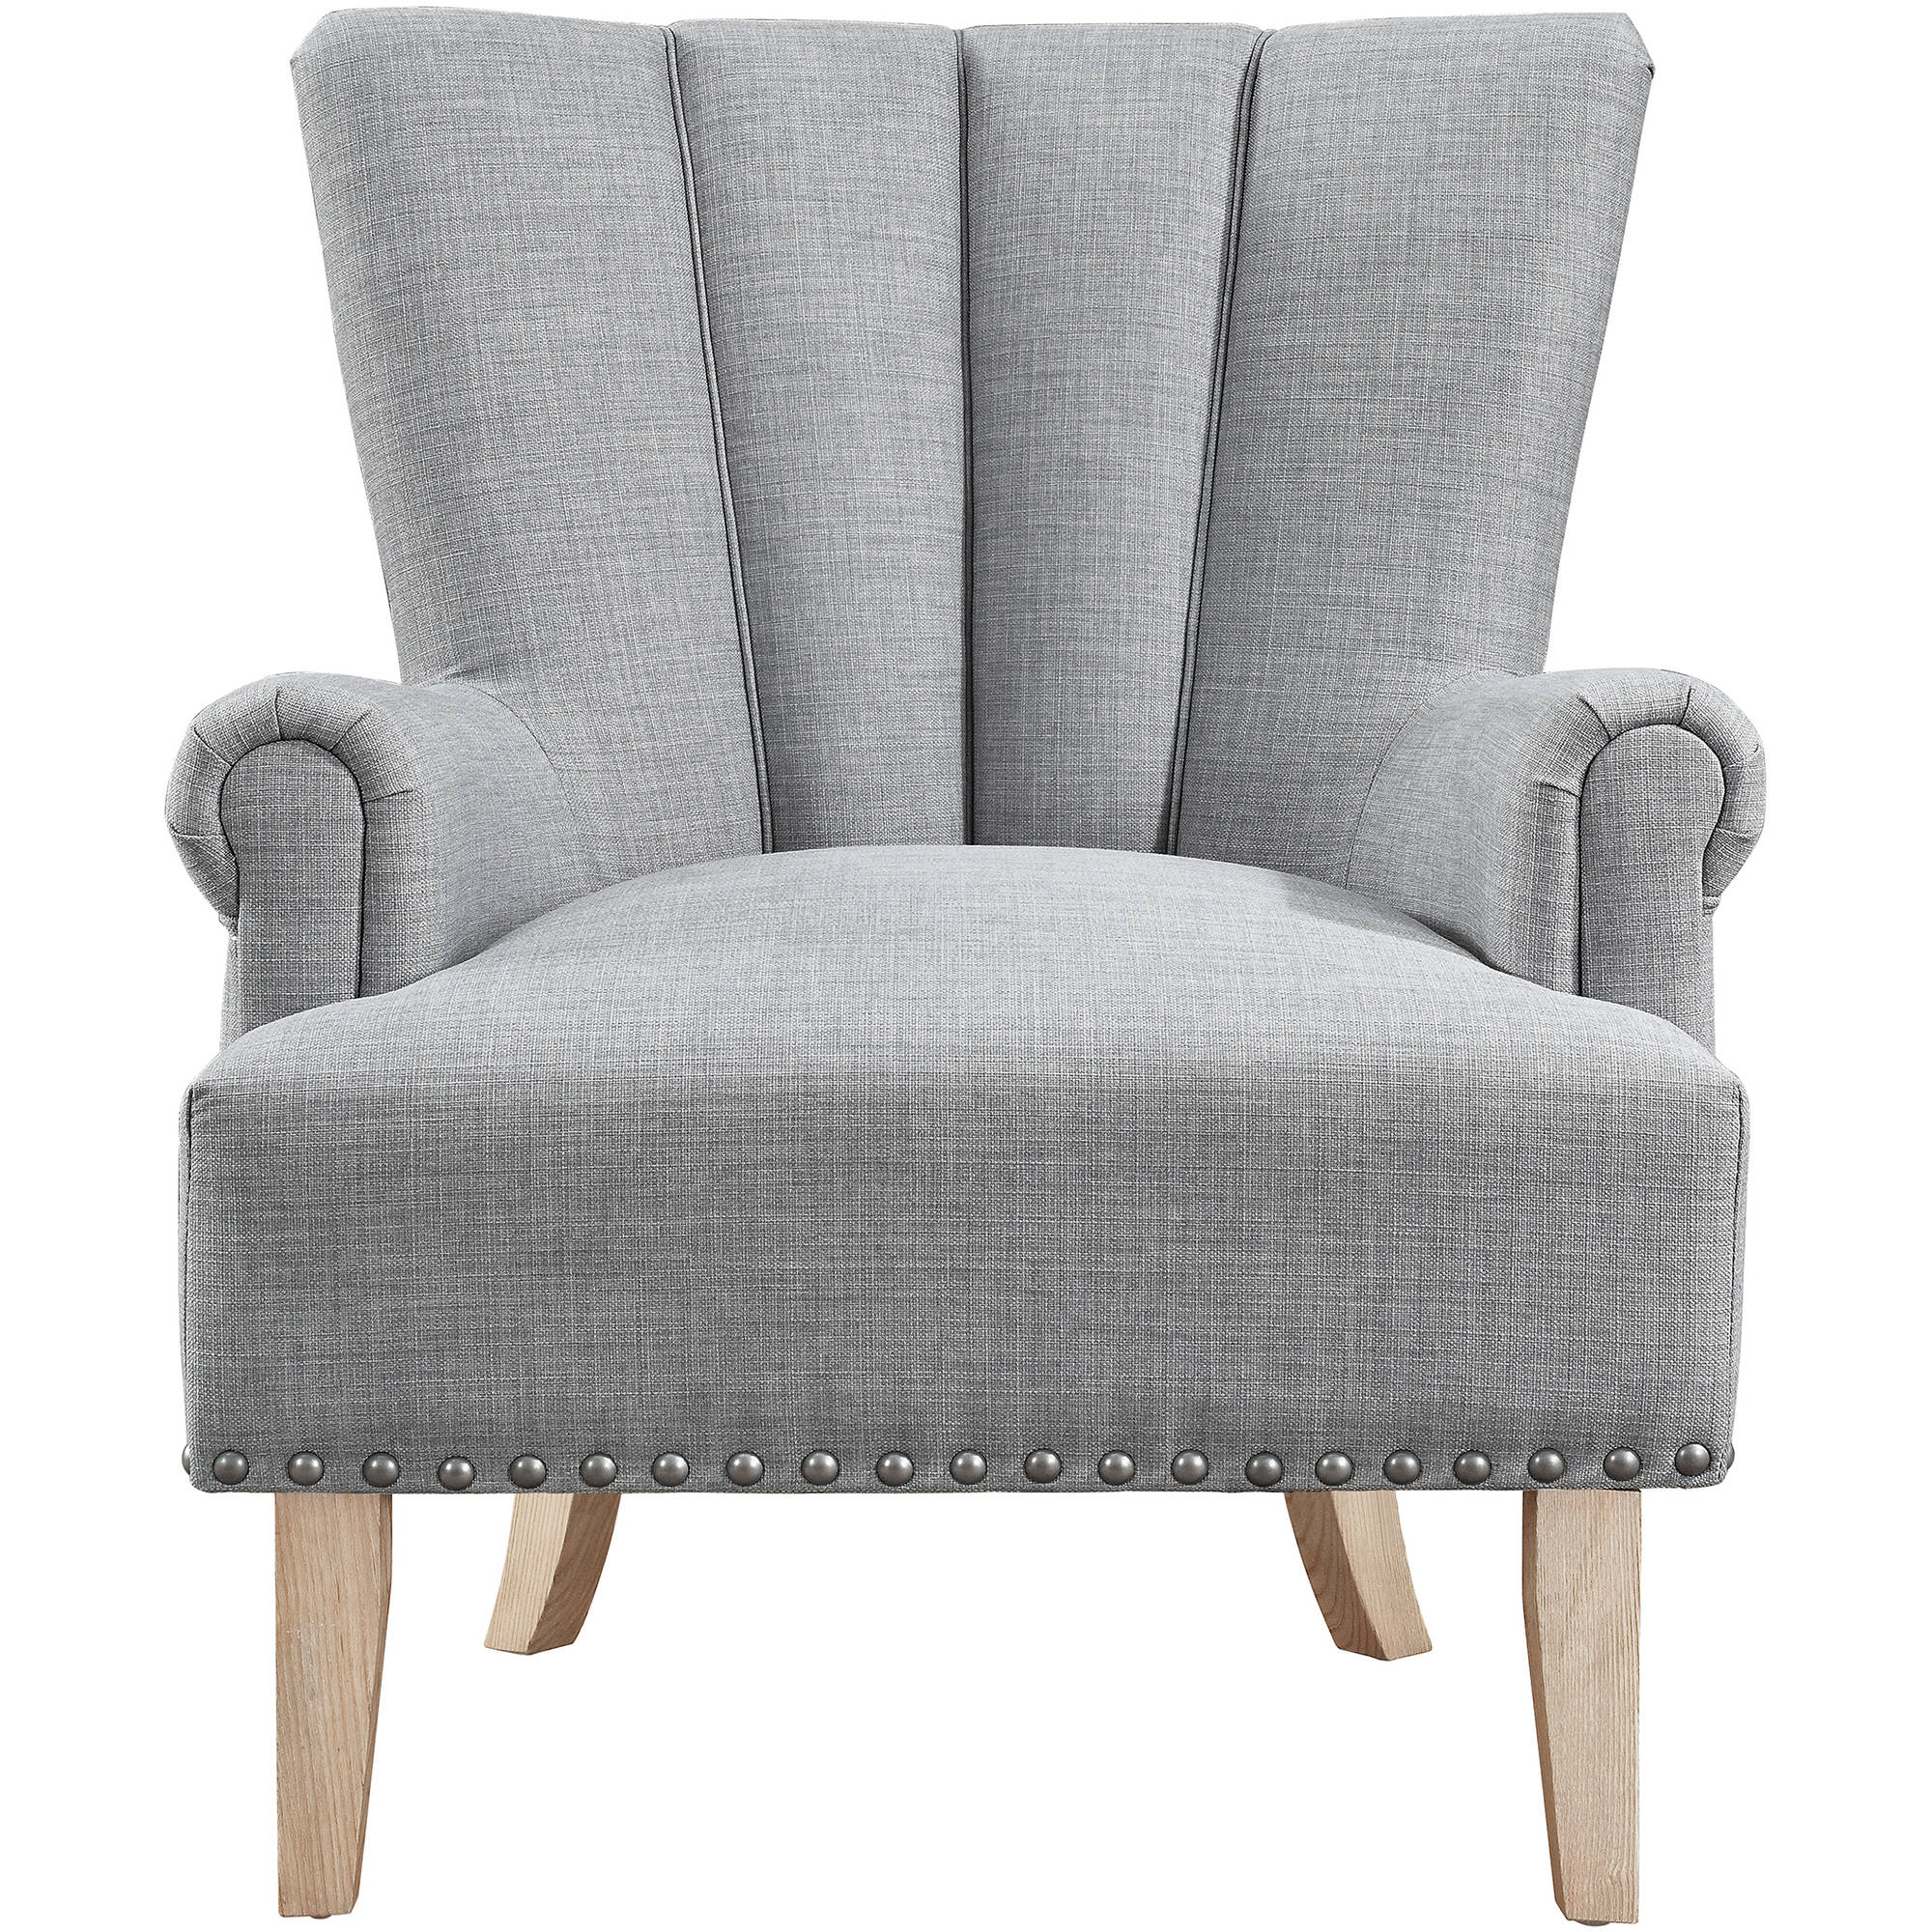 Accent Chair Roll Legs High End: Upholstered Accent Roll Arm Chair Silver Nailheads Wood